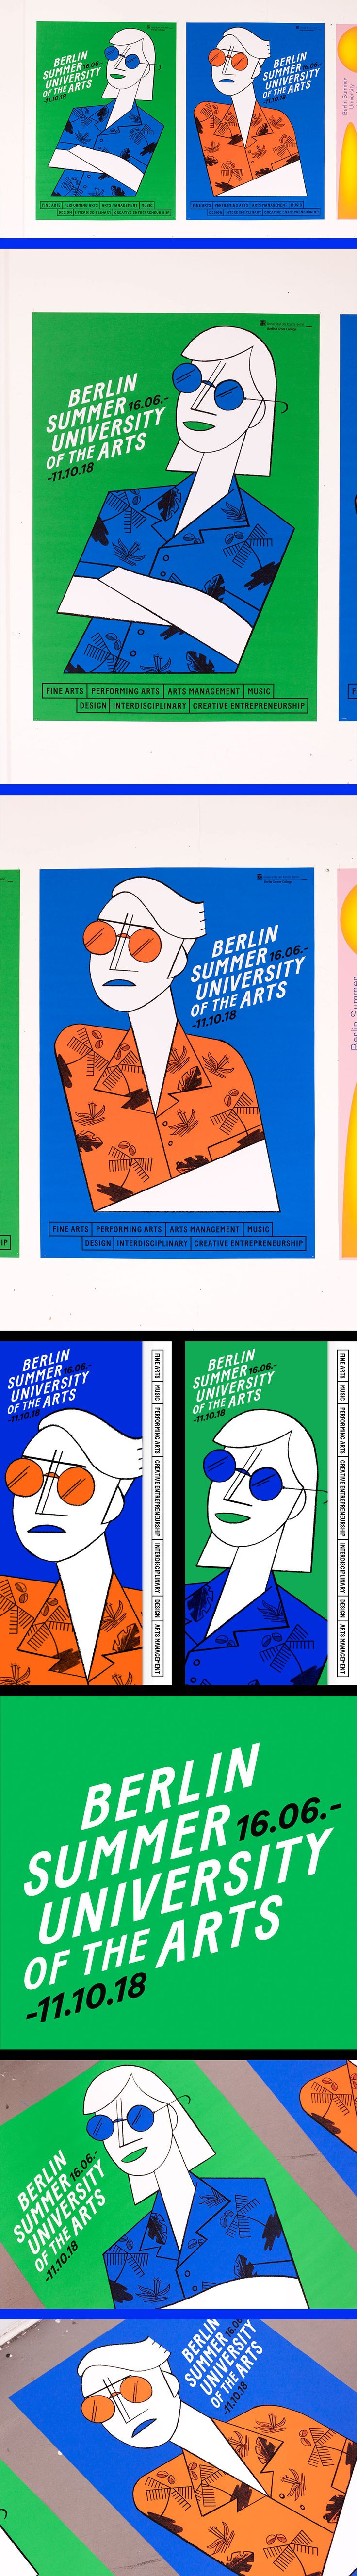 """Check out this @Behance project: """"Summer University of the Arts 2018"""" https://www.behance.net/gallery/54665093/Summer-University-of-the-Arts-2018"""